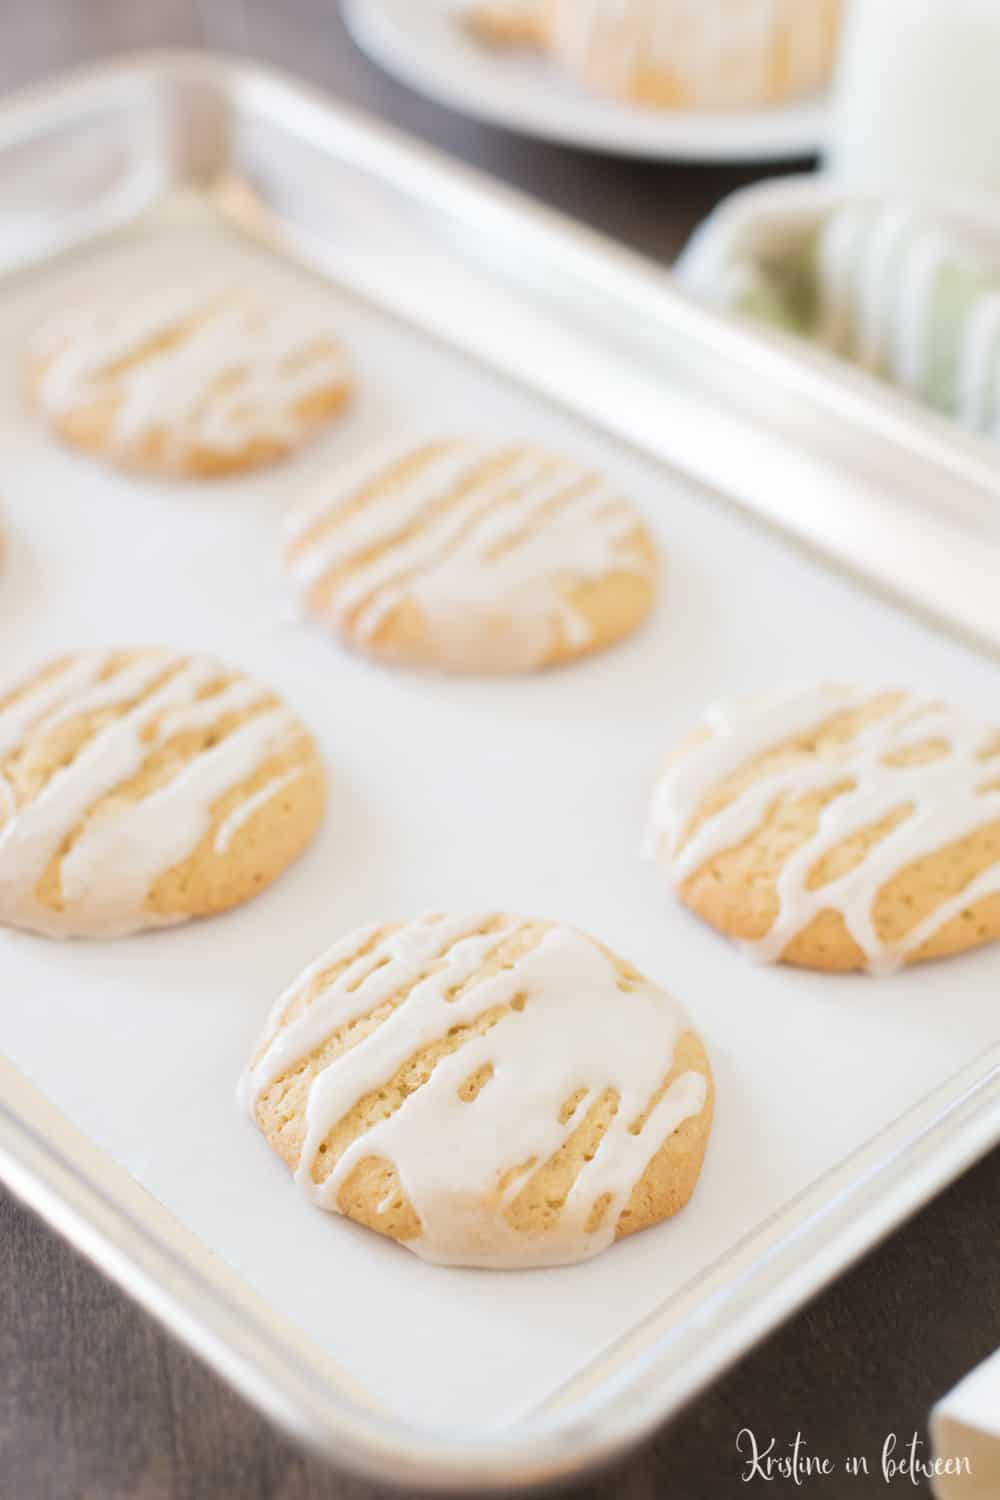 These maple sugar cookies are soft and chewy with a sweet maple glaze! They're quick and easy to make and are the perfect sweet treat!